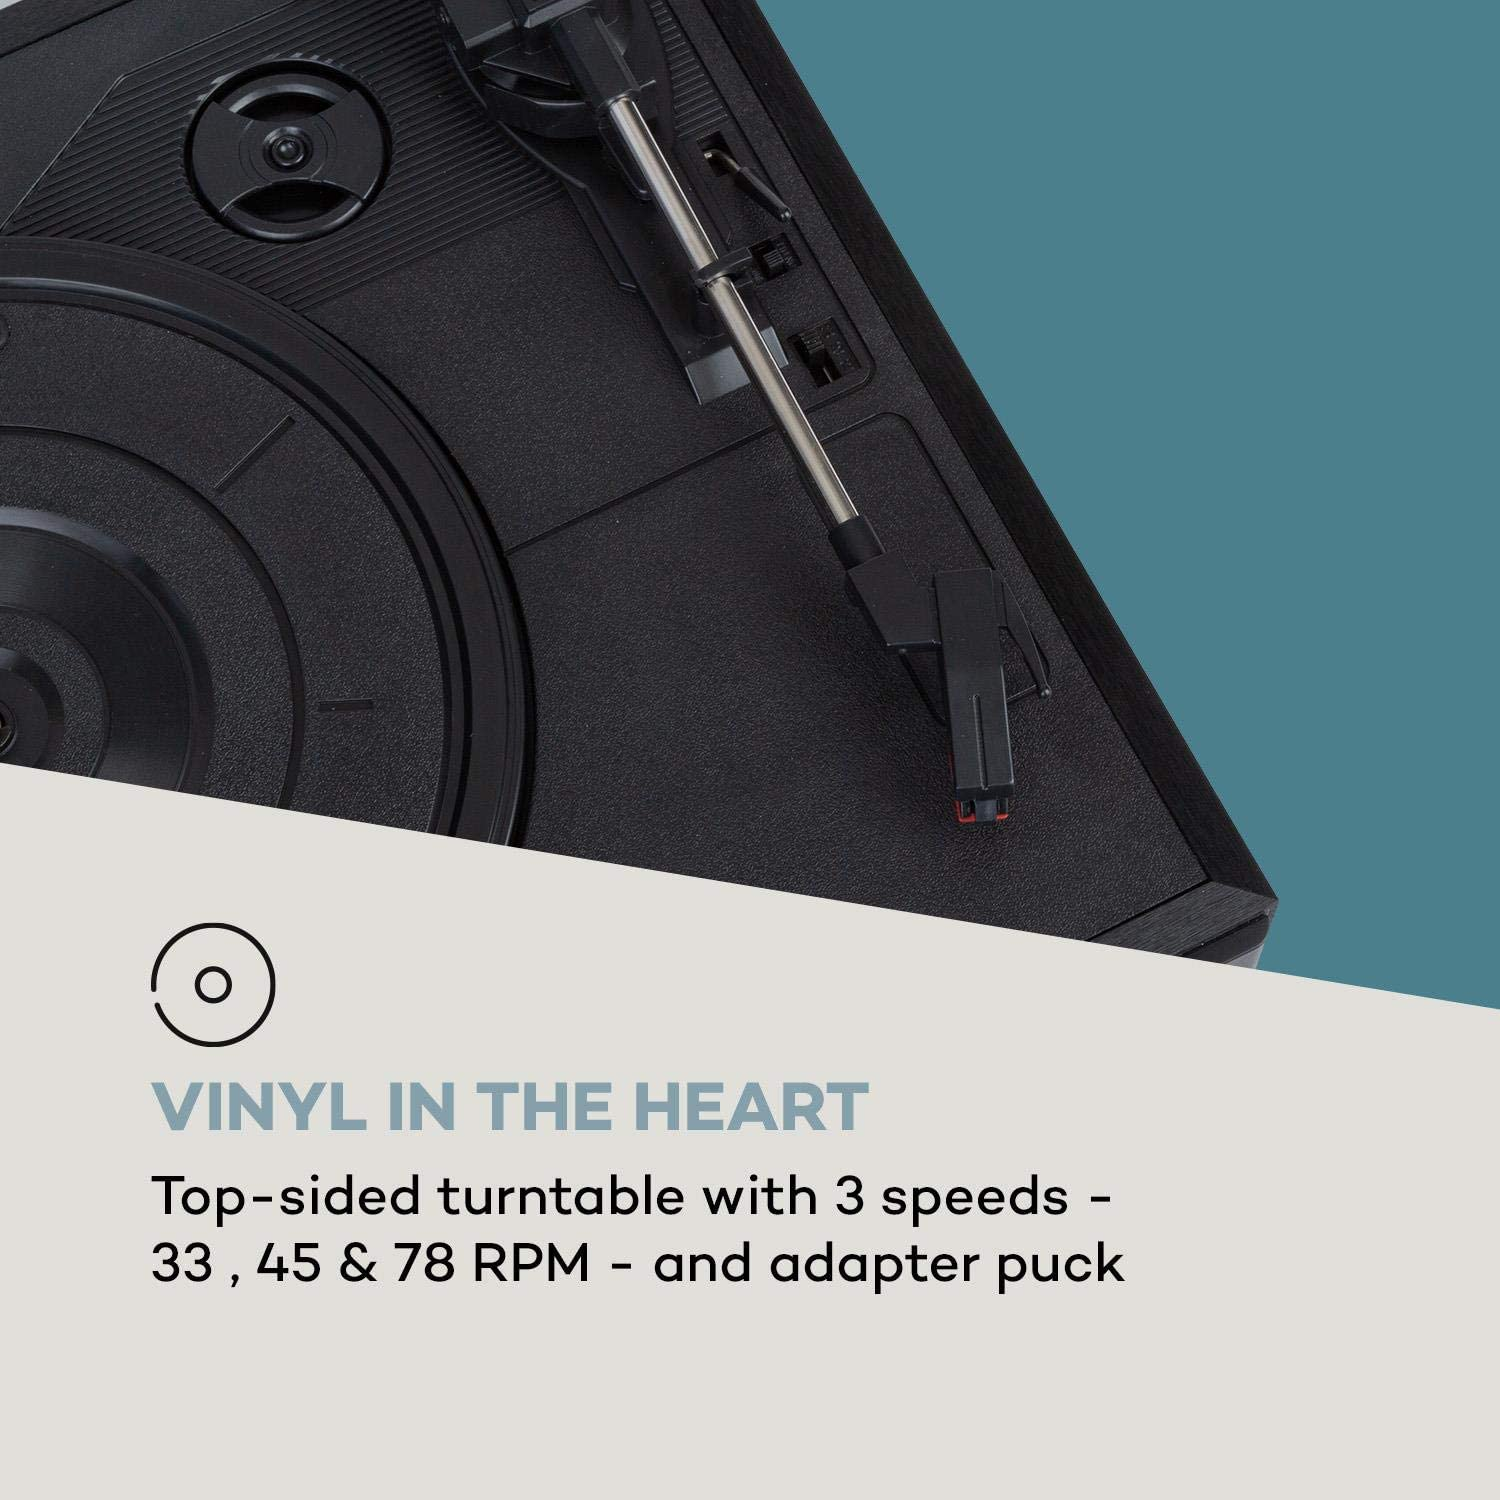 AUNA Connect Vinyl Smart Radio Turntable 40W Speakers SmartRadio Internet DAB DAB RPM Bluetooth Spotify Connect App Control TFT Colour Display Remote Black